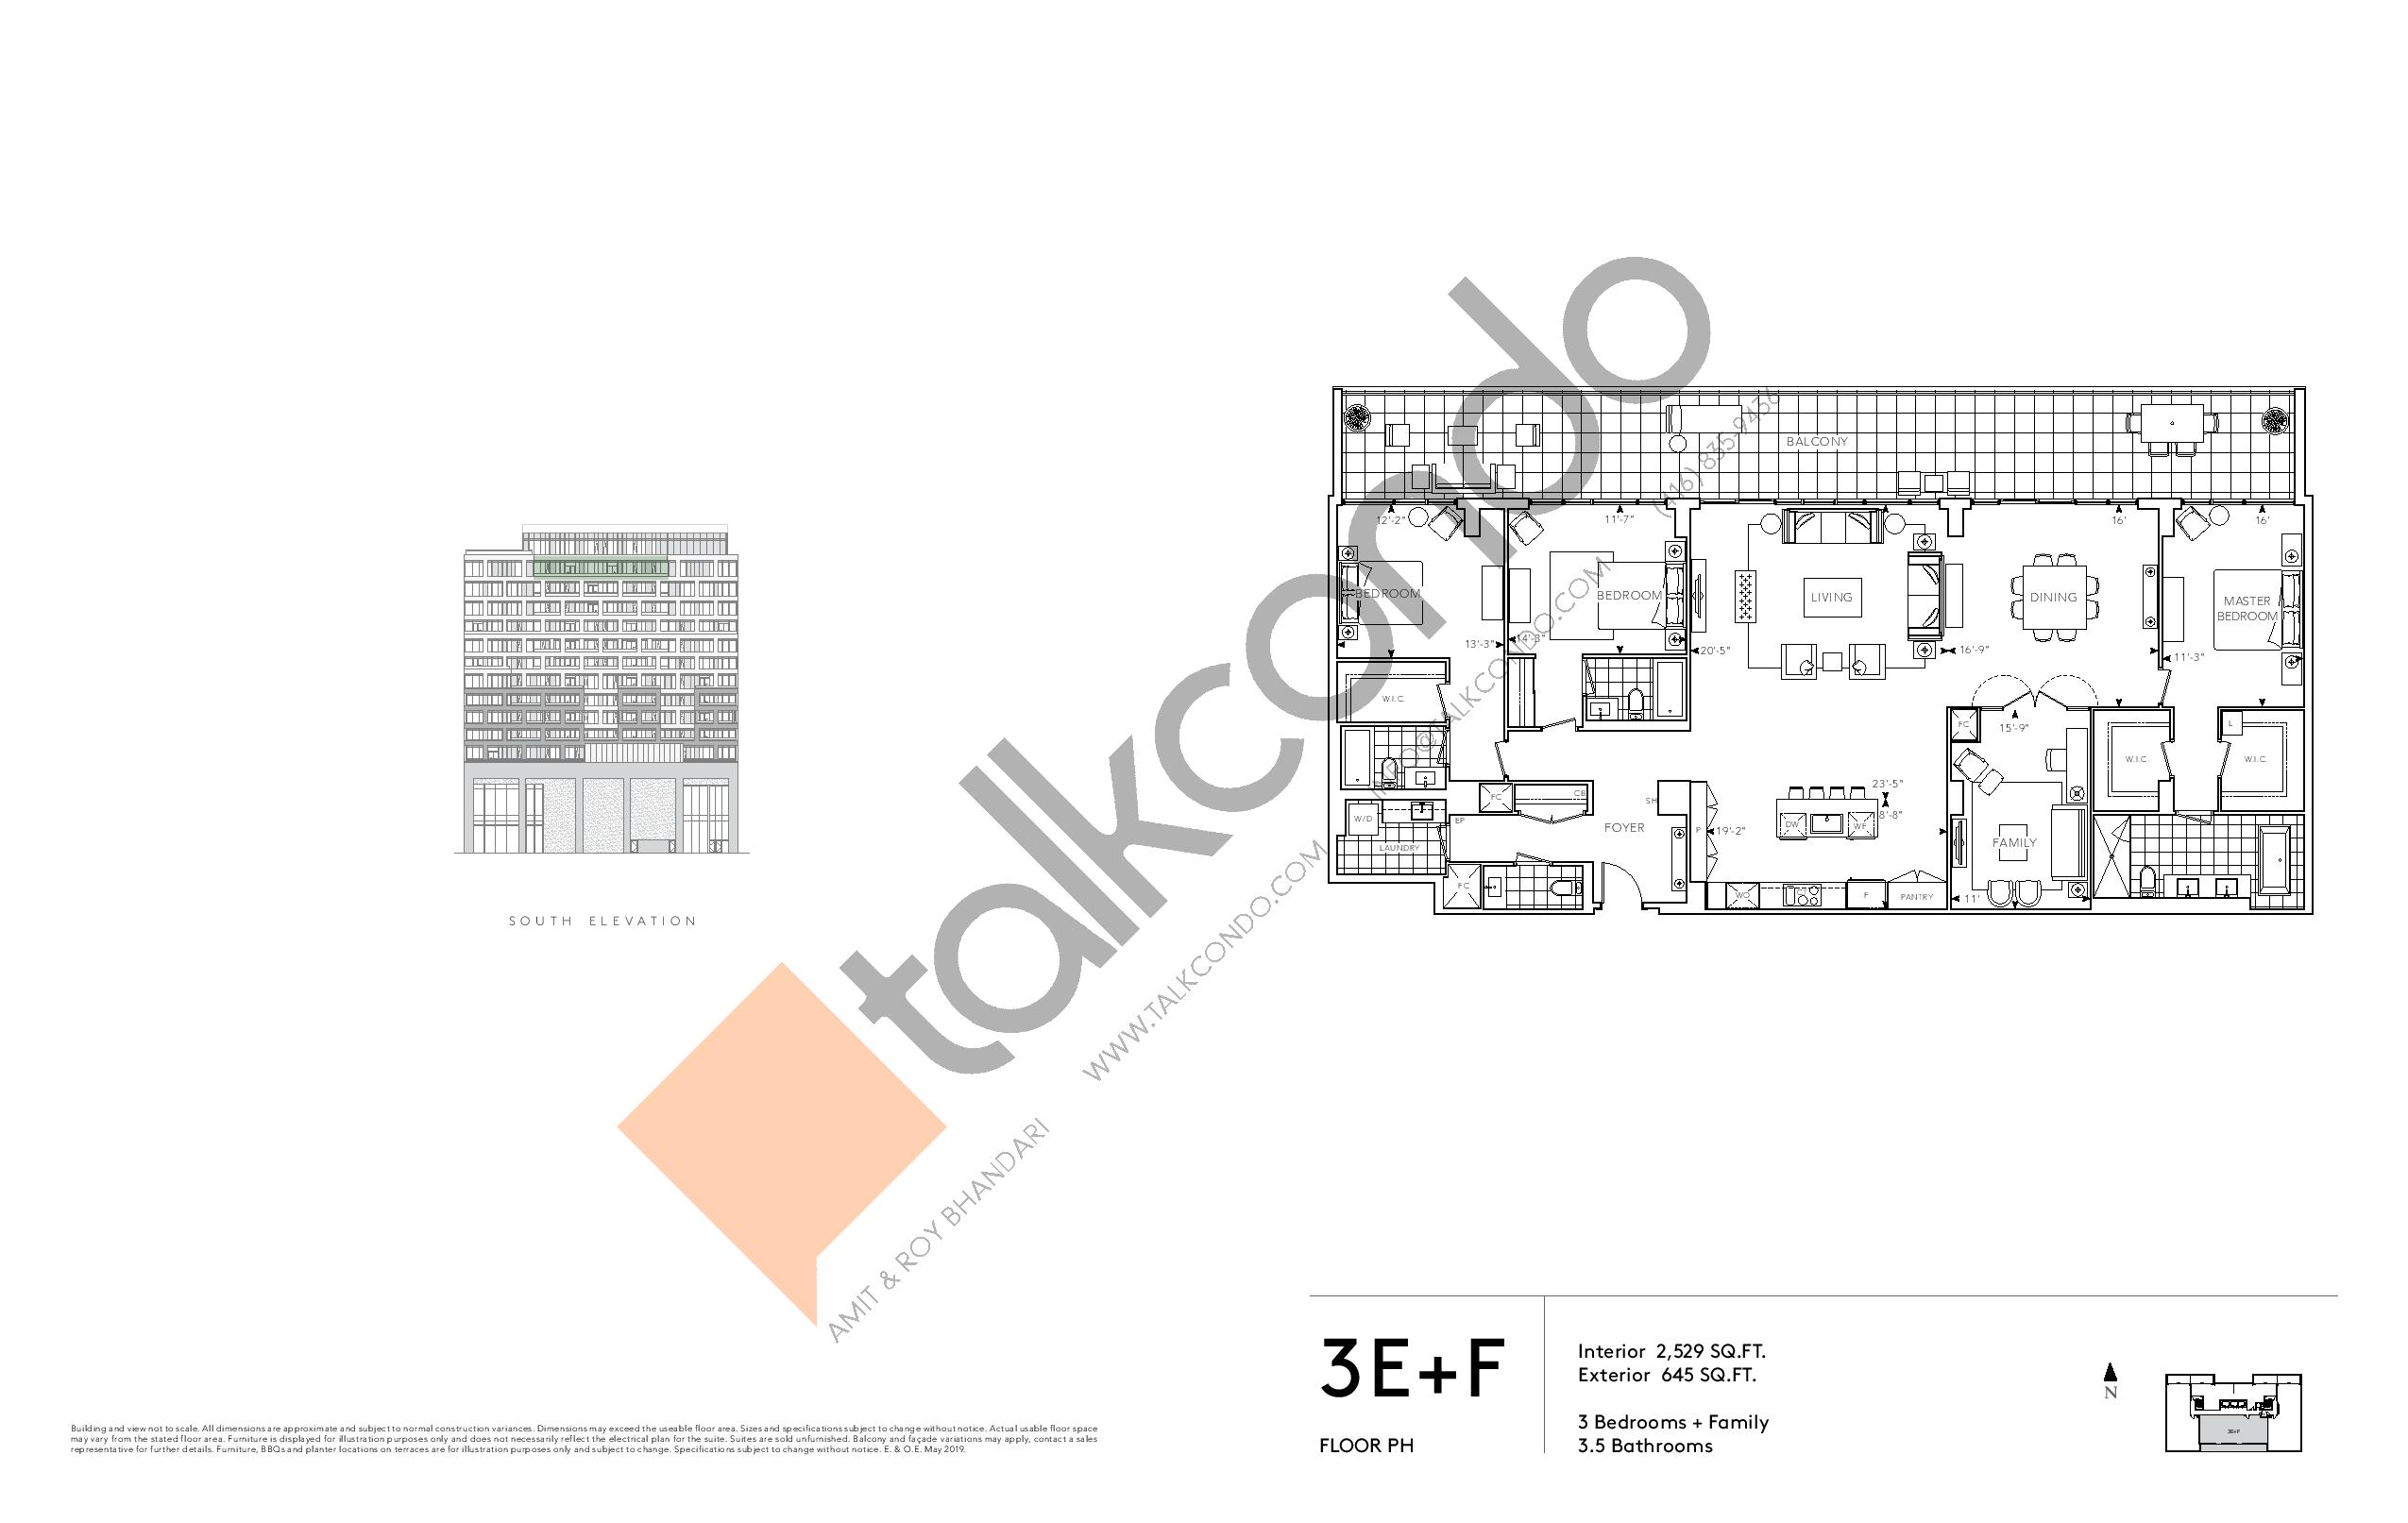 3E+F - Signature Series Floor Plan at Tridel at The Well Condos - 2529 sq.ft